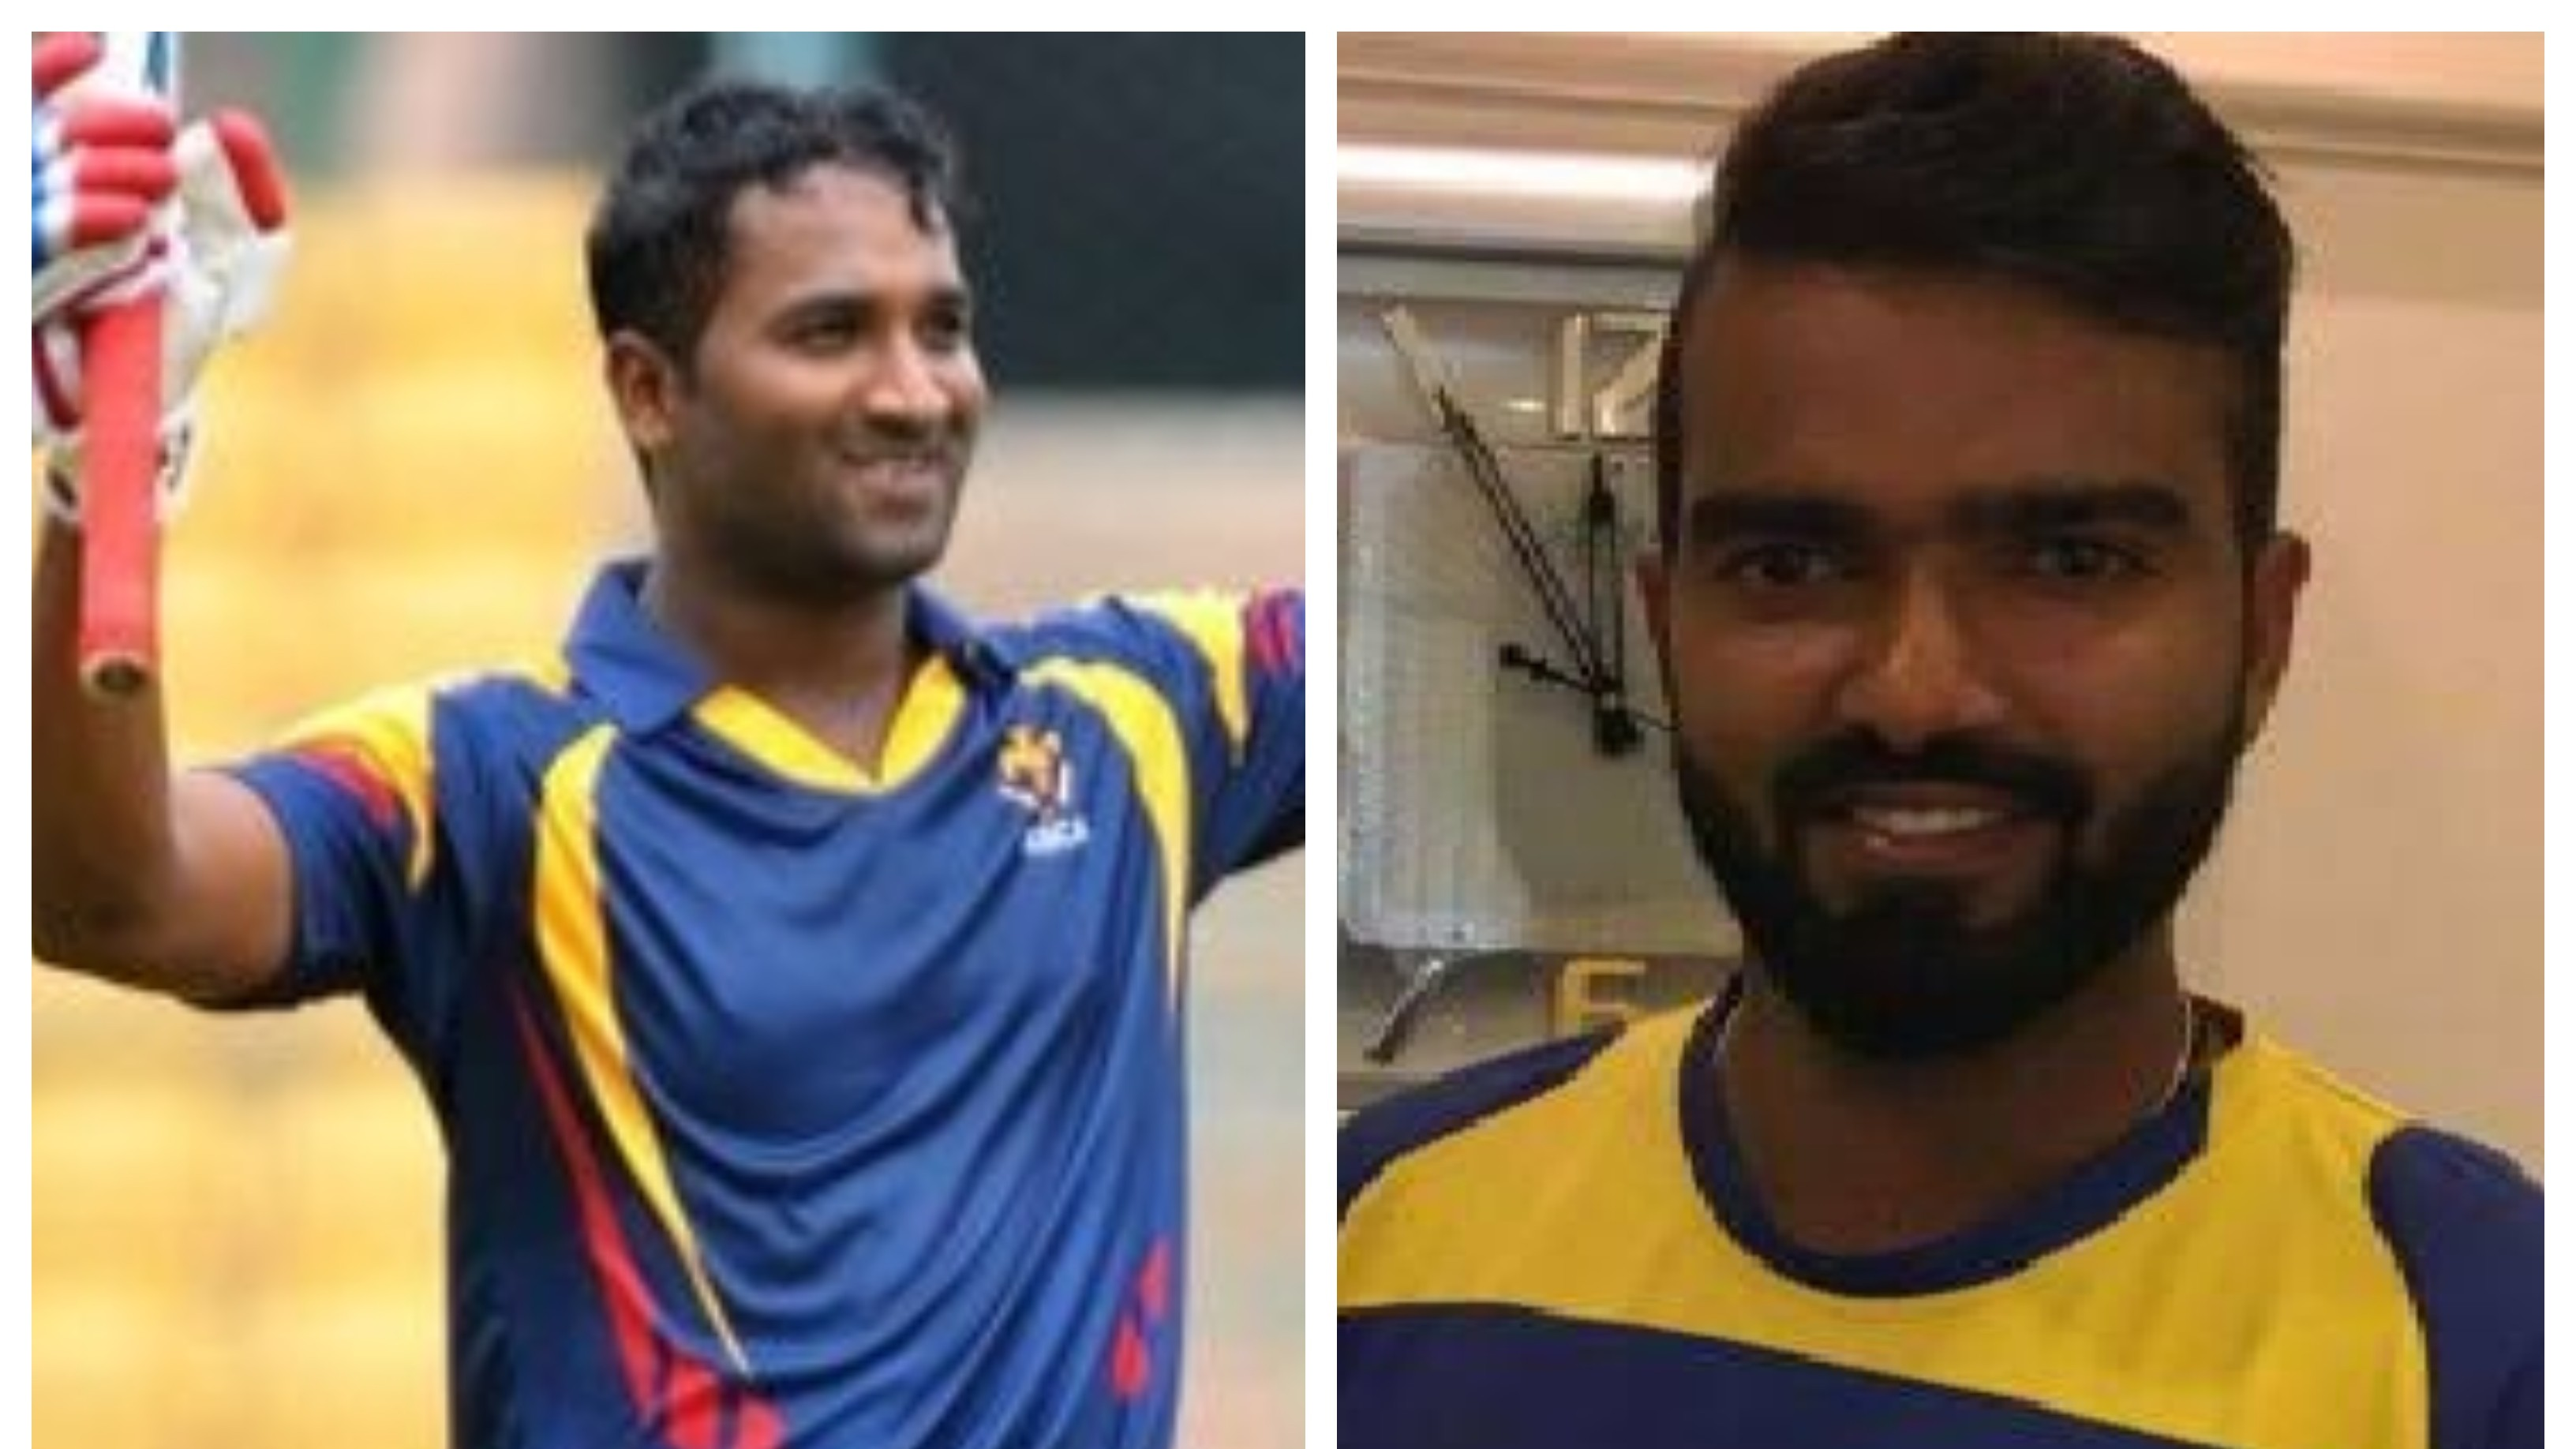 CM Gautam and Abrar Kazi have been arrested for their roles in KPL fixing case   Twitter